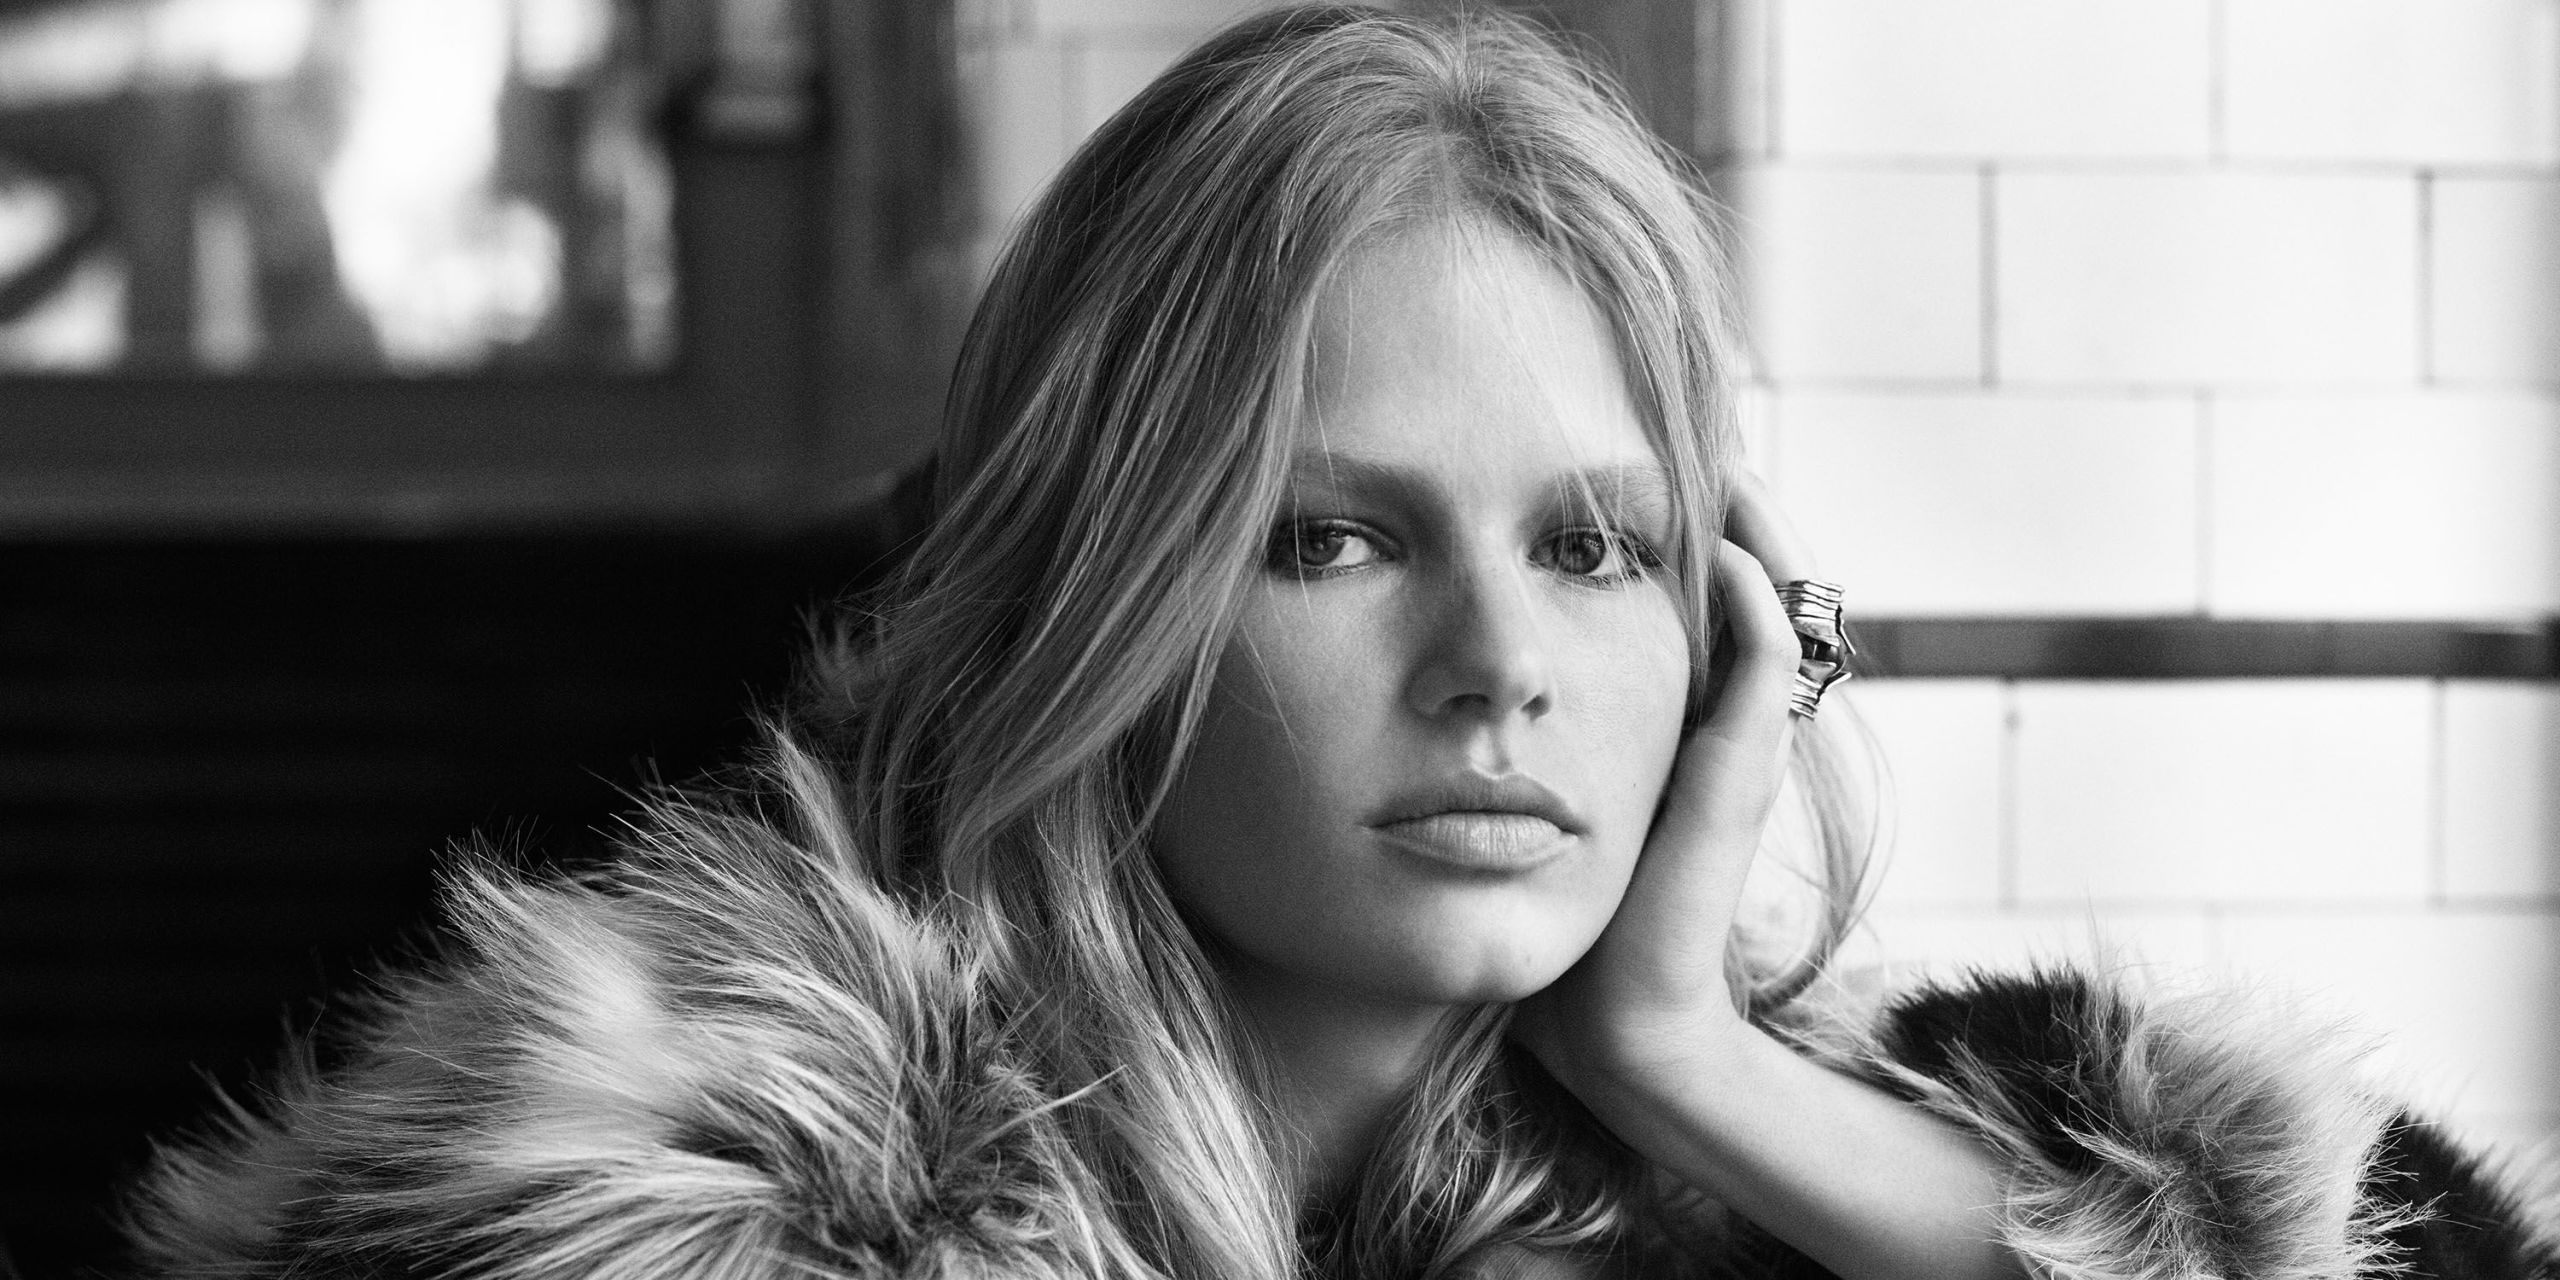 Exclusive: Anna Ewers is the Face of H&M's Fall in Love Campaign